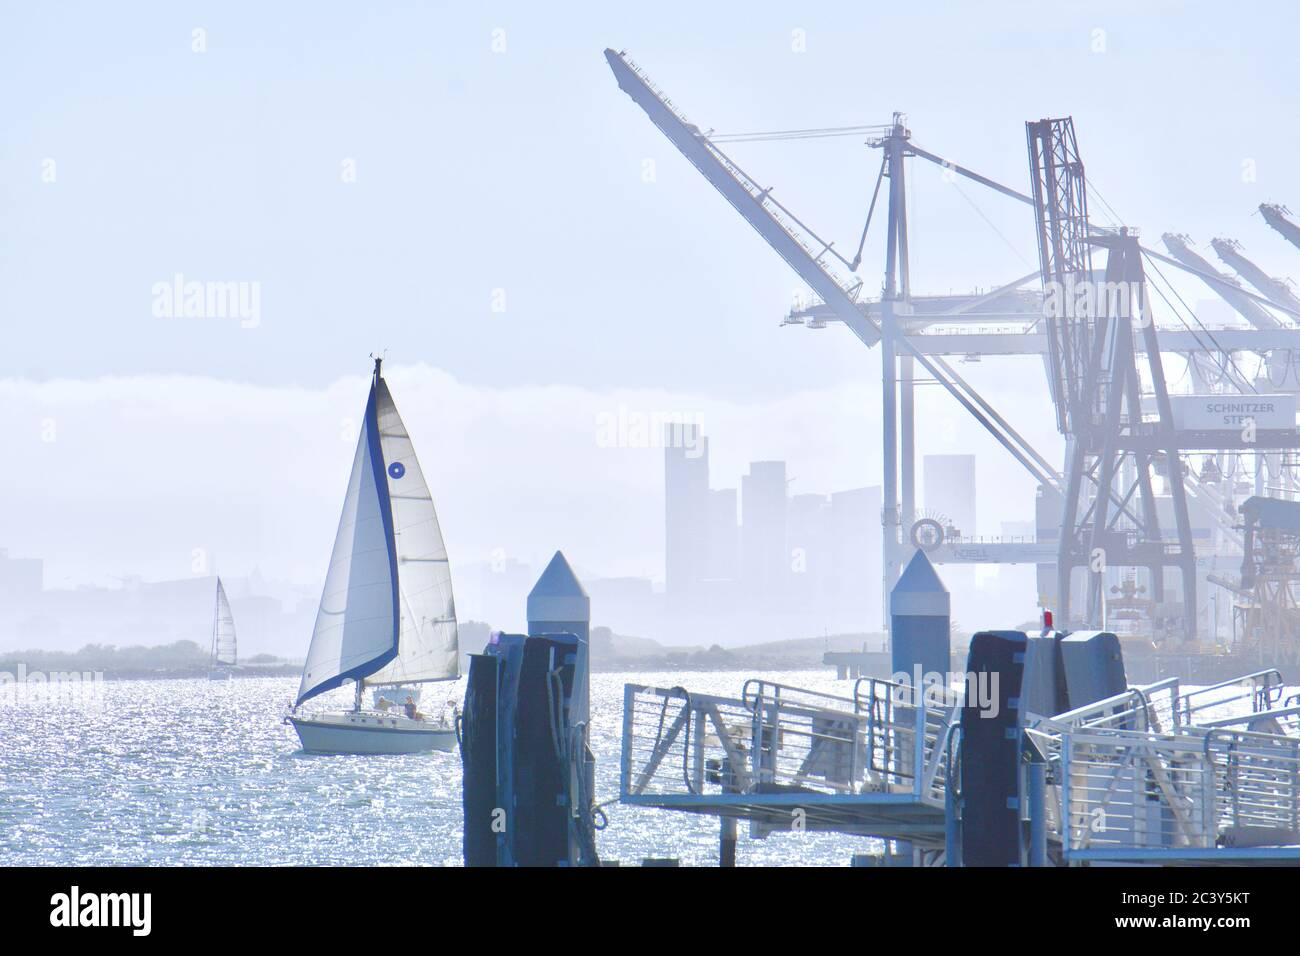 sailboat-entering-oakland-inner-harbor-at-jack-london-square-with-giant-shipping-cranes-and-docks-the-san-francisco-skyline-behind-oakland-ca-2C3Y5KT.jpg